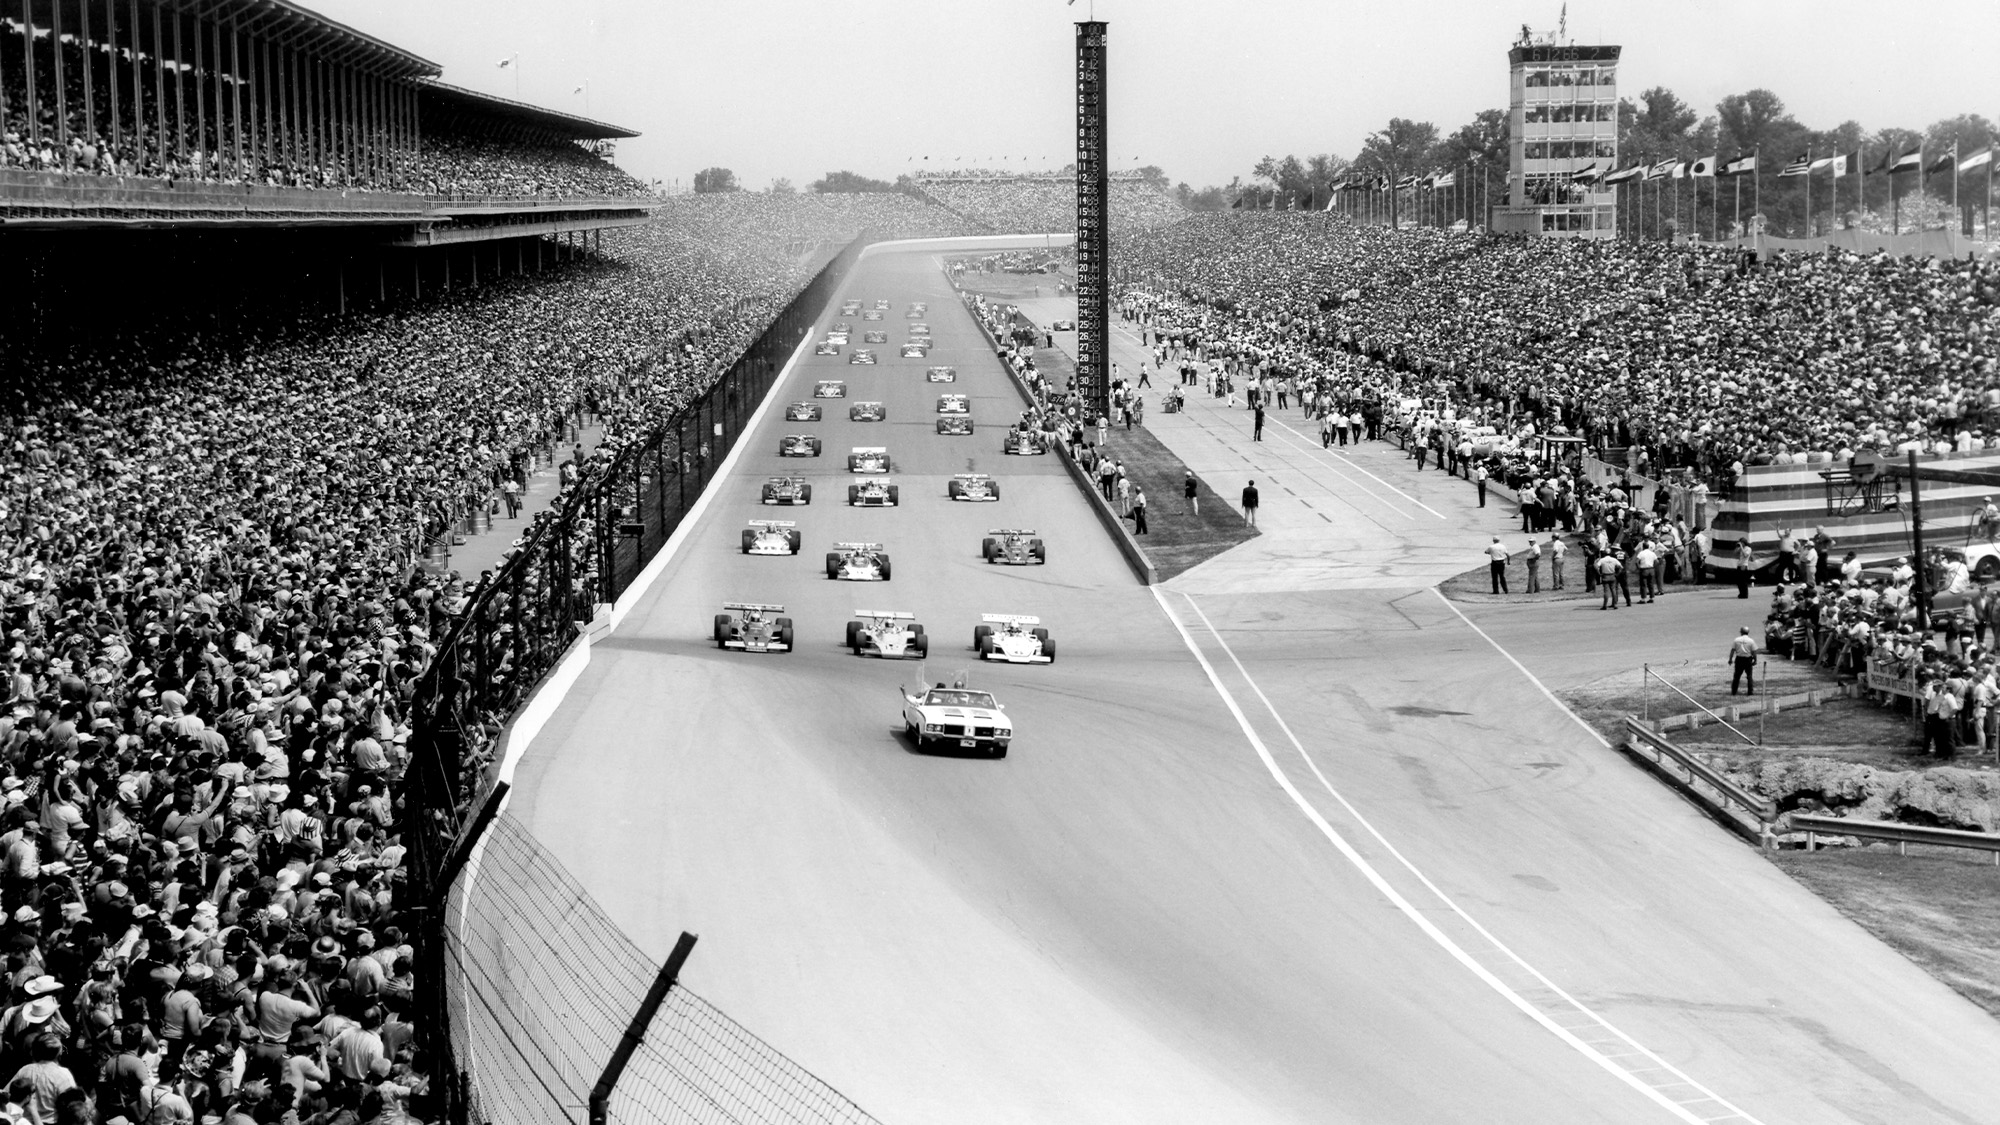 Start of the 1972 Indy 500